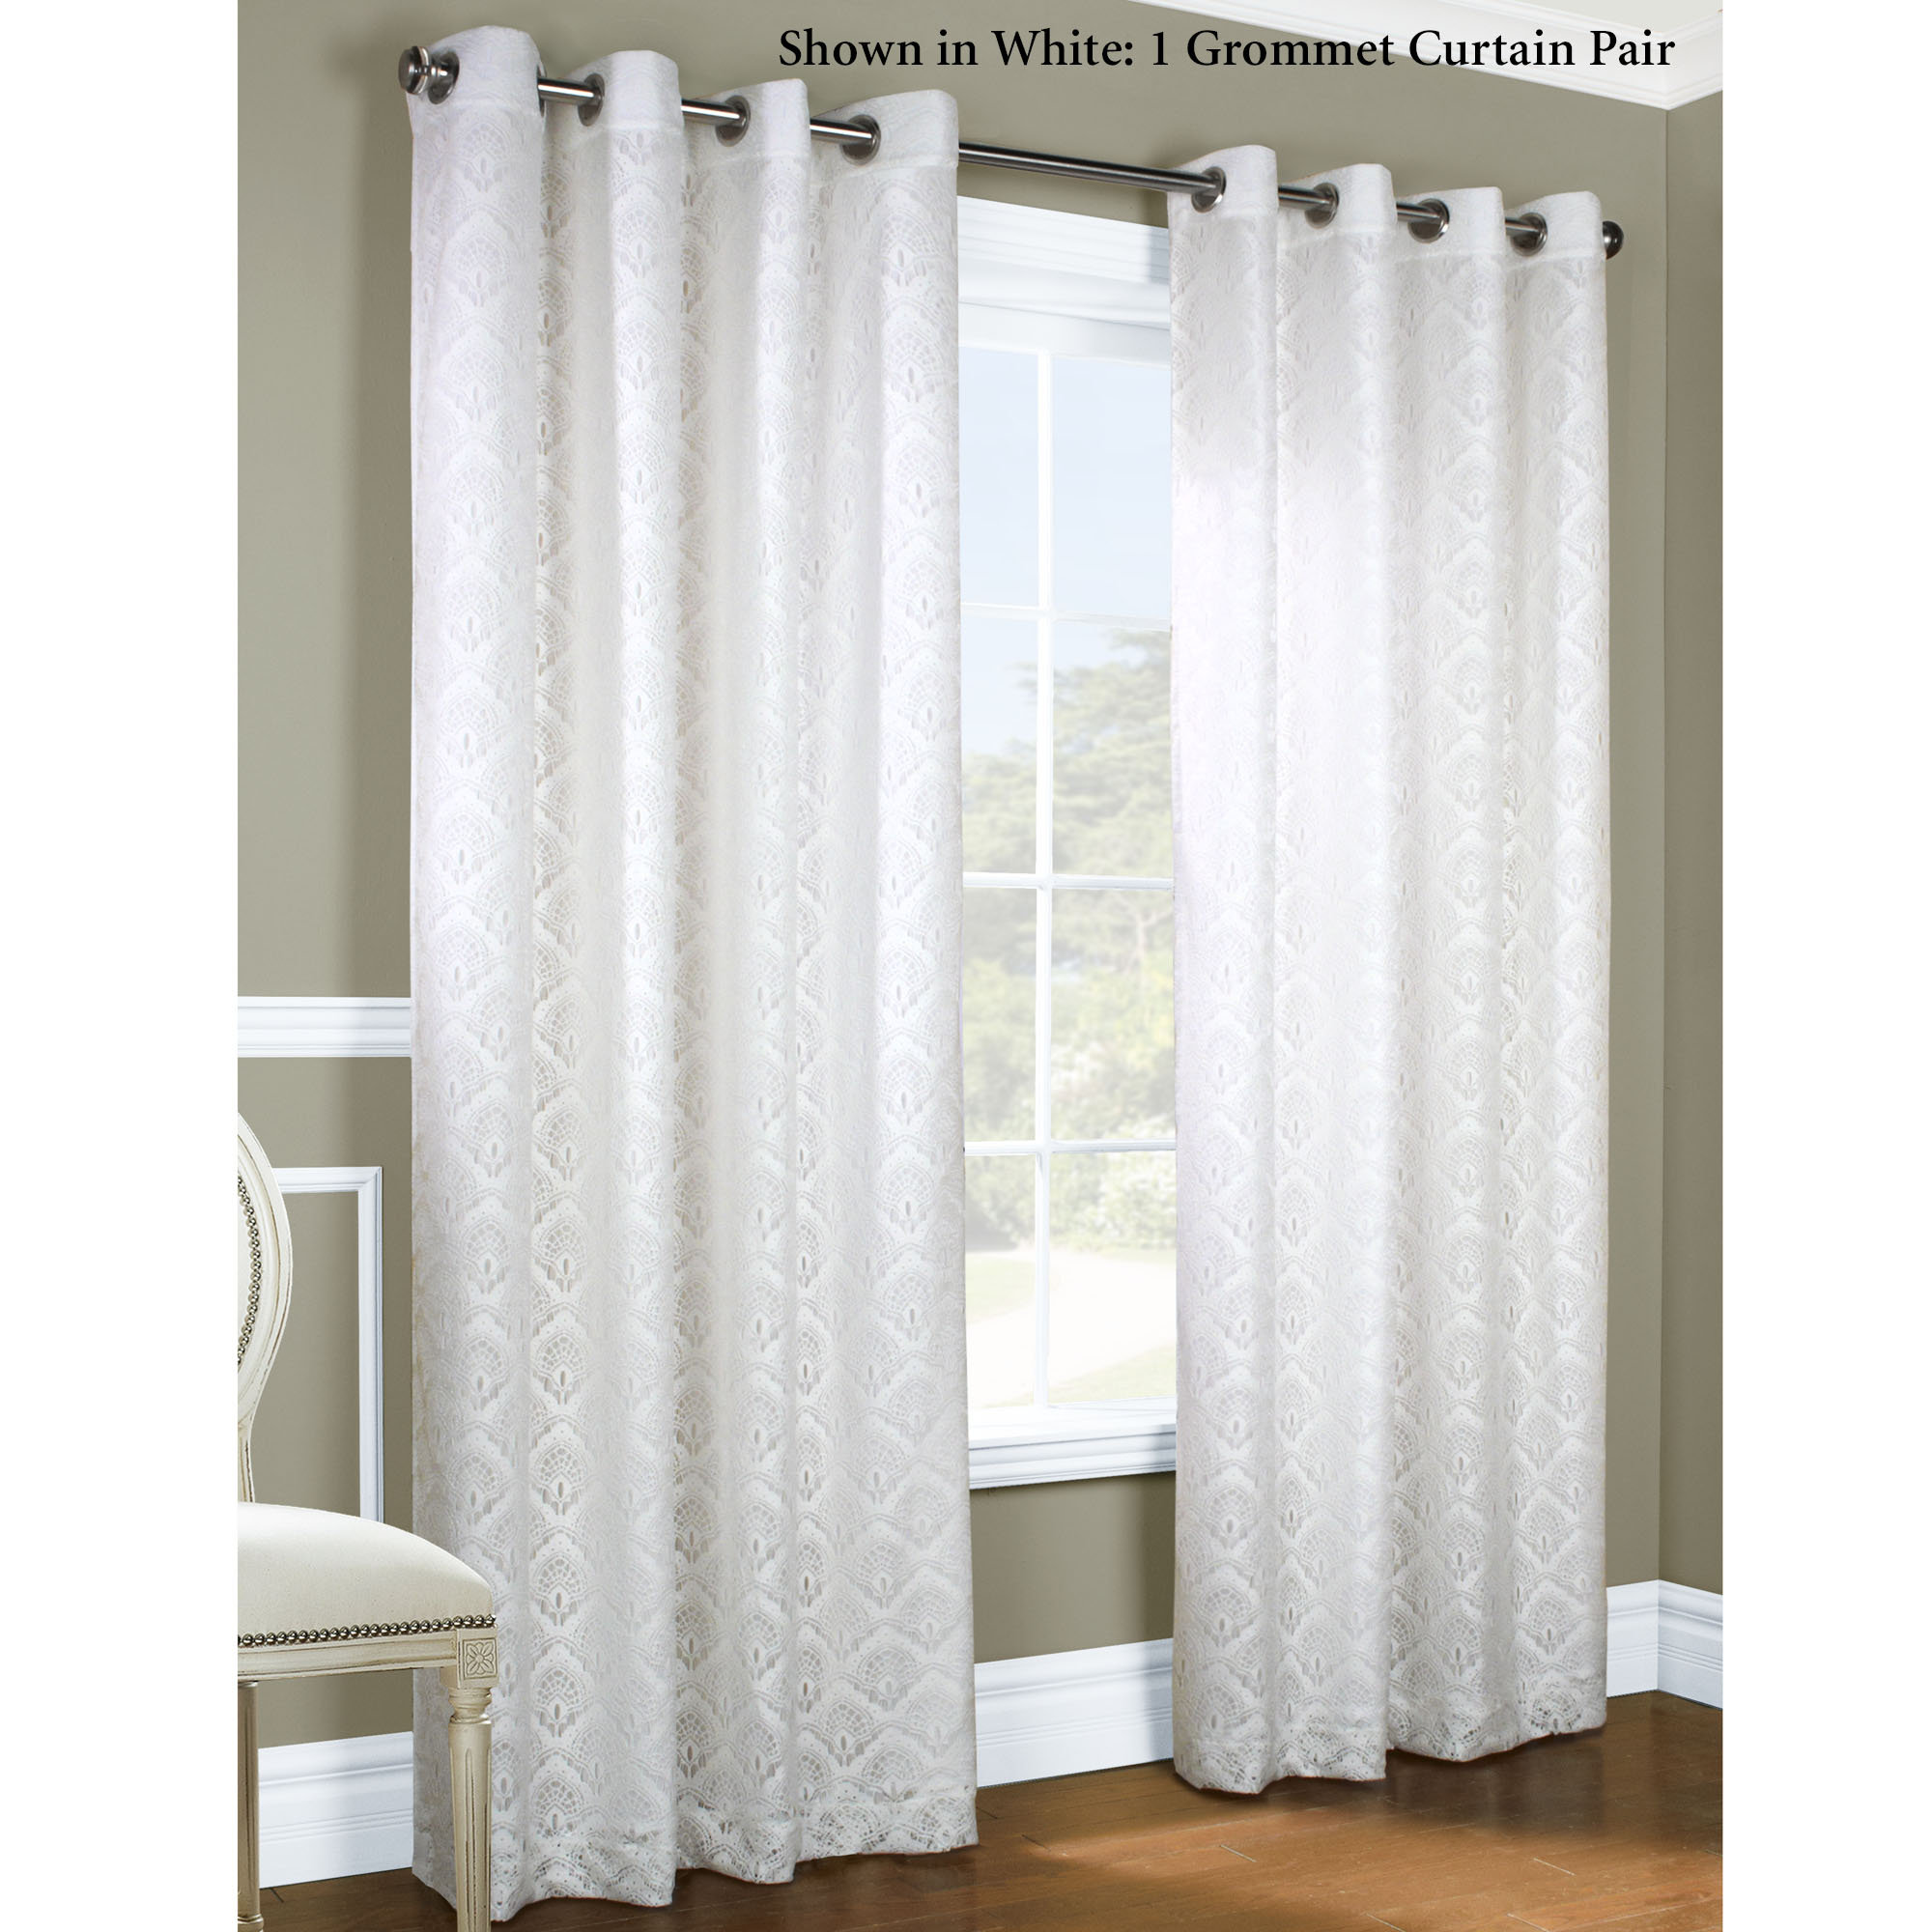 Cheap Blackout Curtains | Short Blackout Curtains | Thermal Blackout Drapes